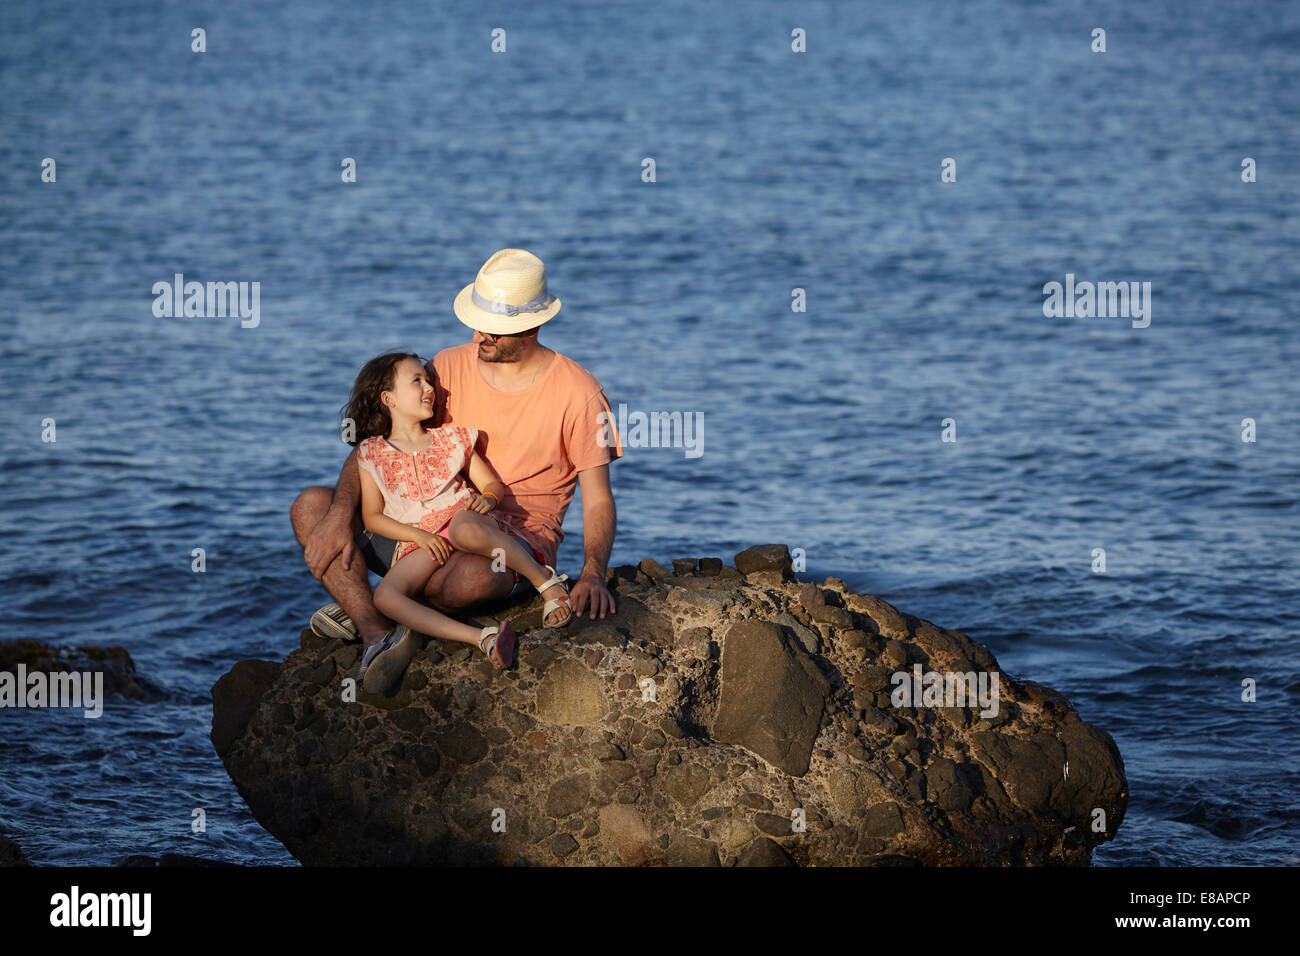 Father and daughter, sitting on rock in sea, Costa Brava, Catalonia, Spain - Stock Image